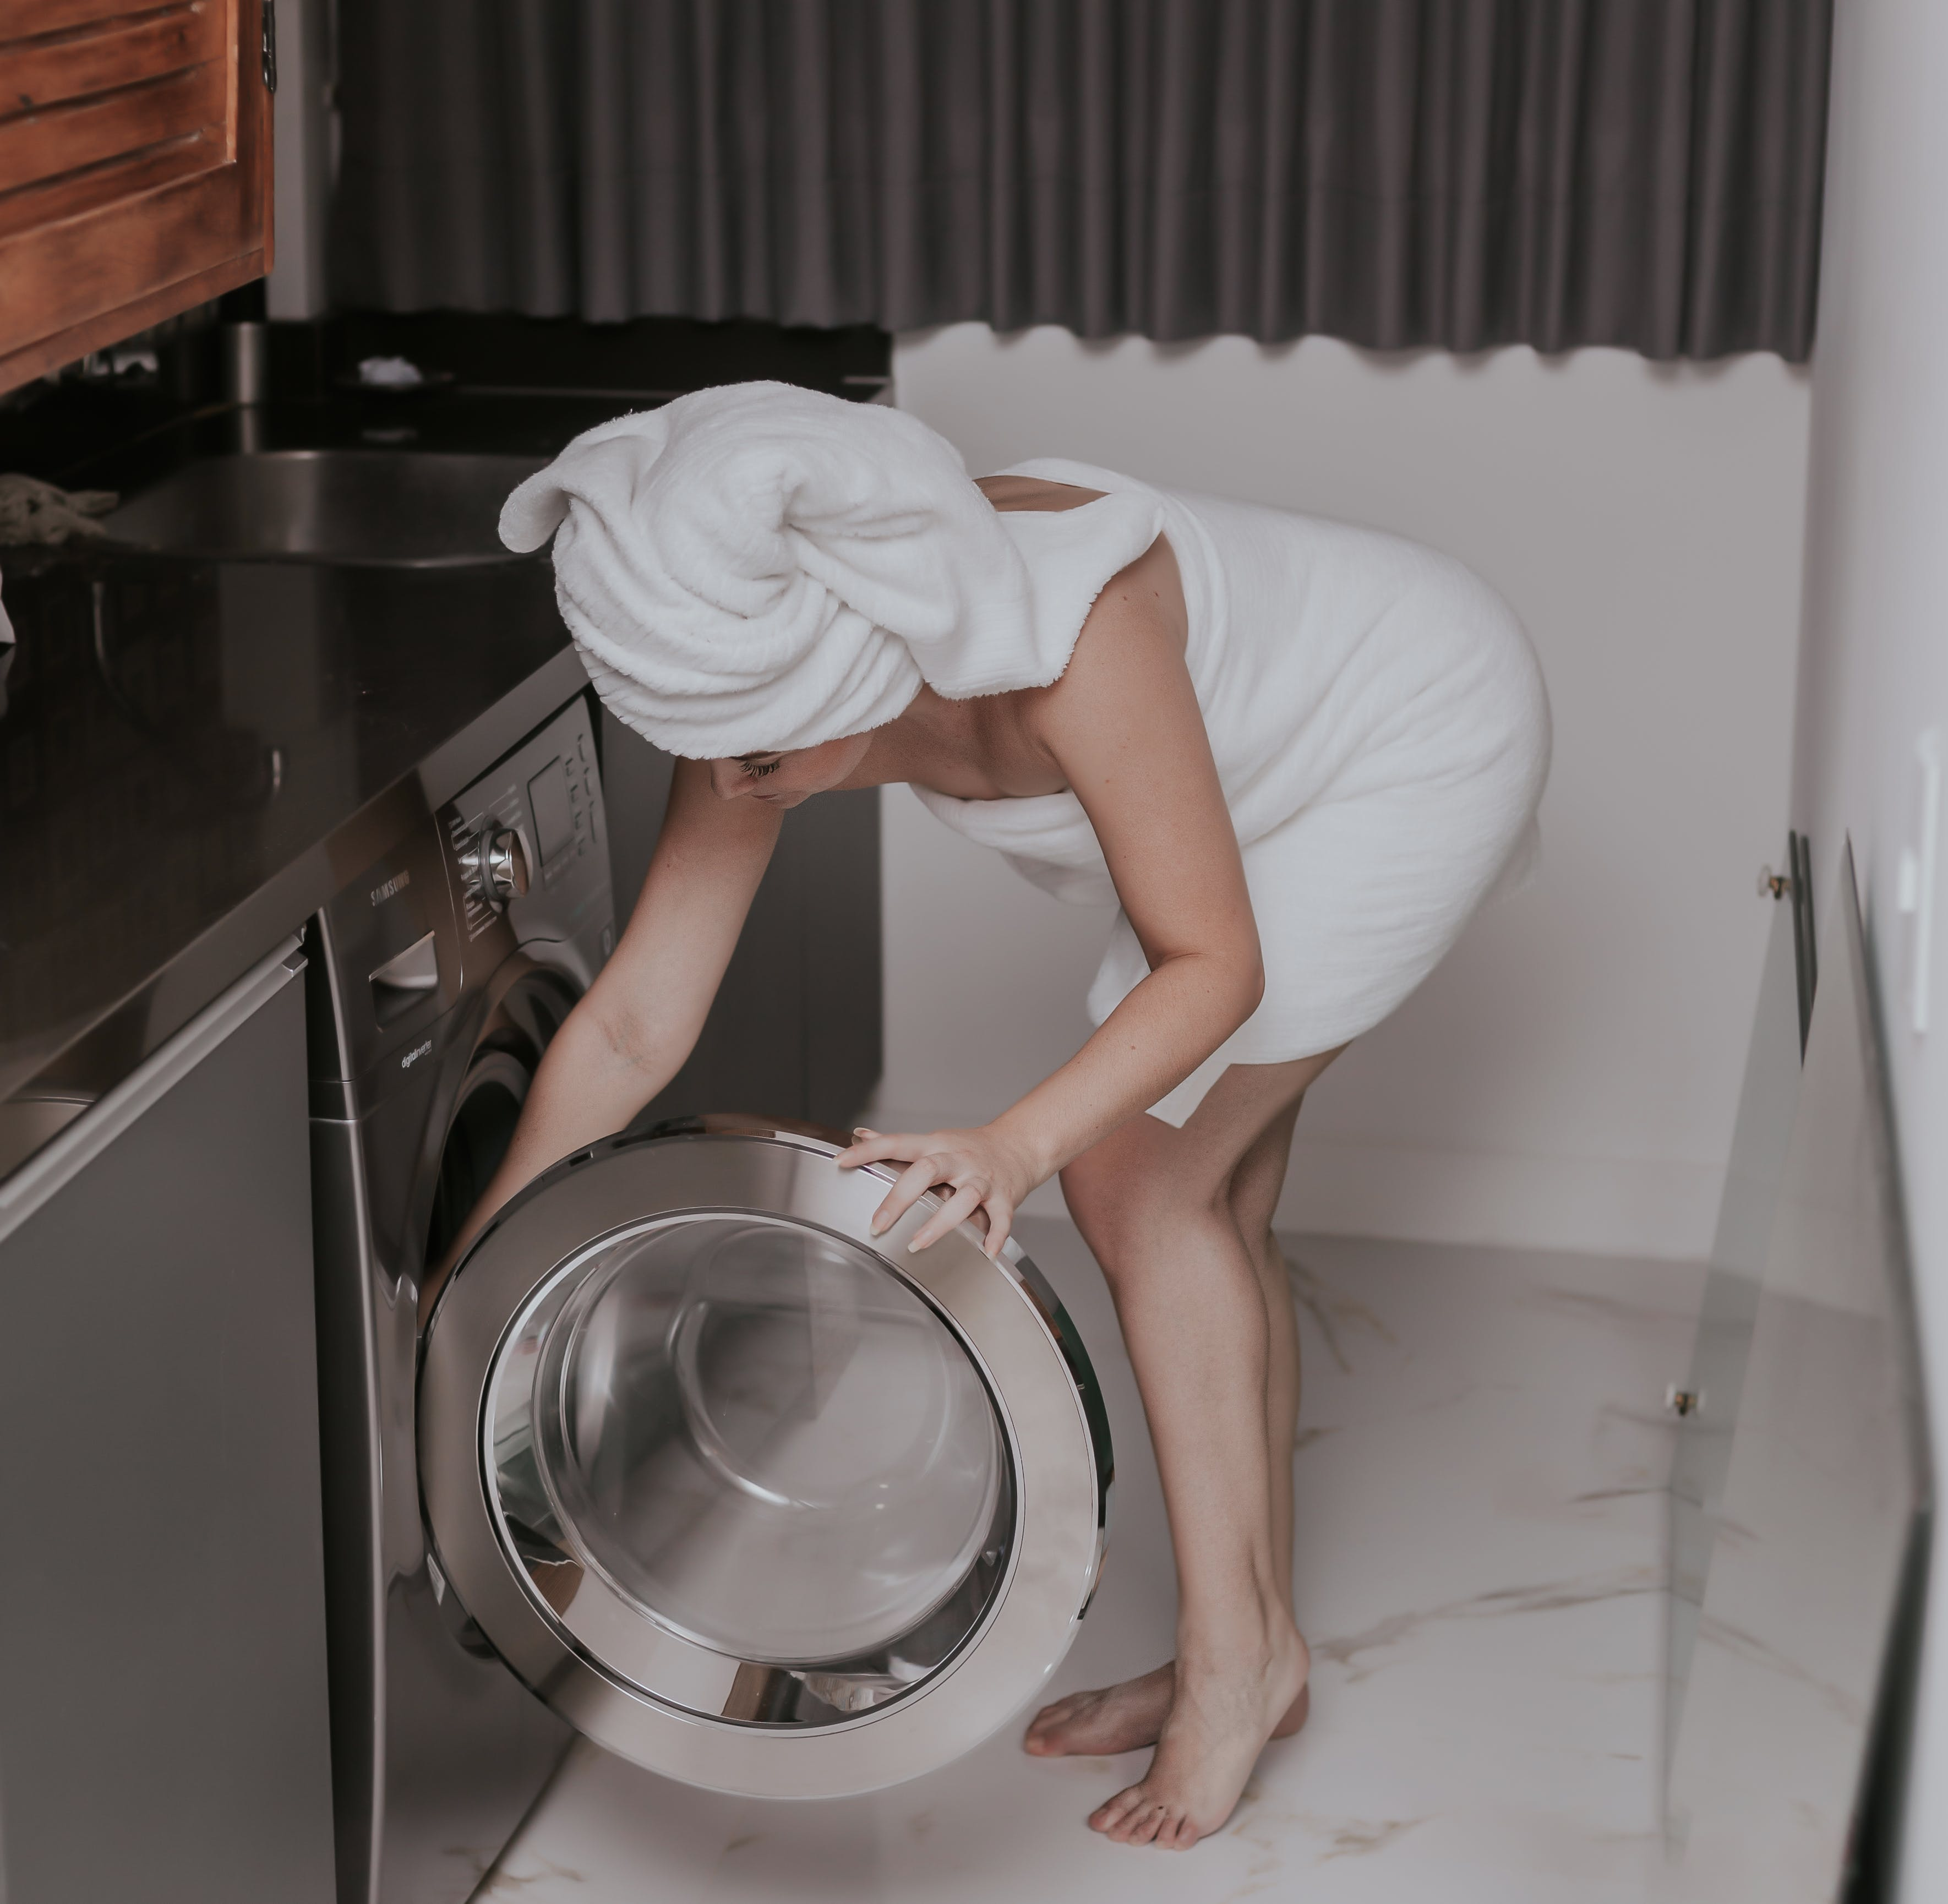 Woman Wearing White Towel While Washing Clothes